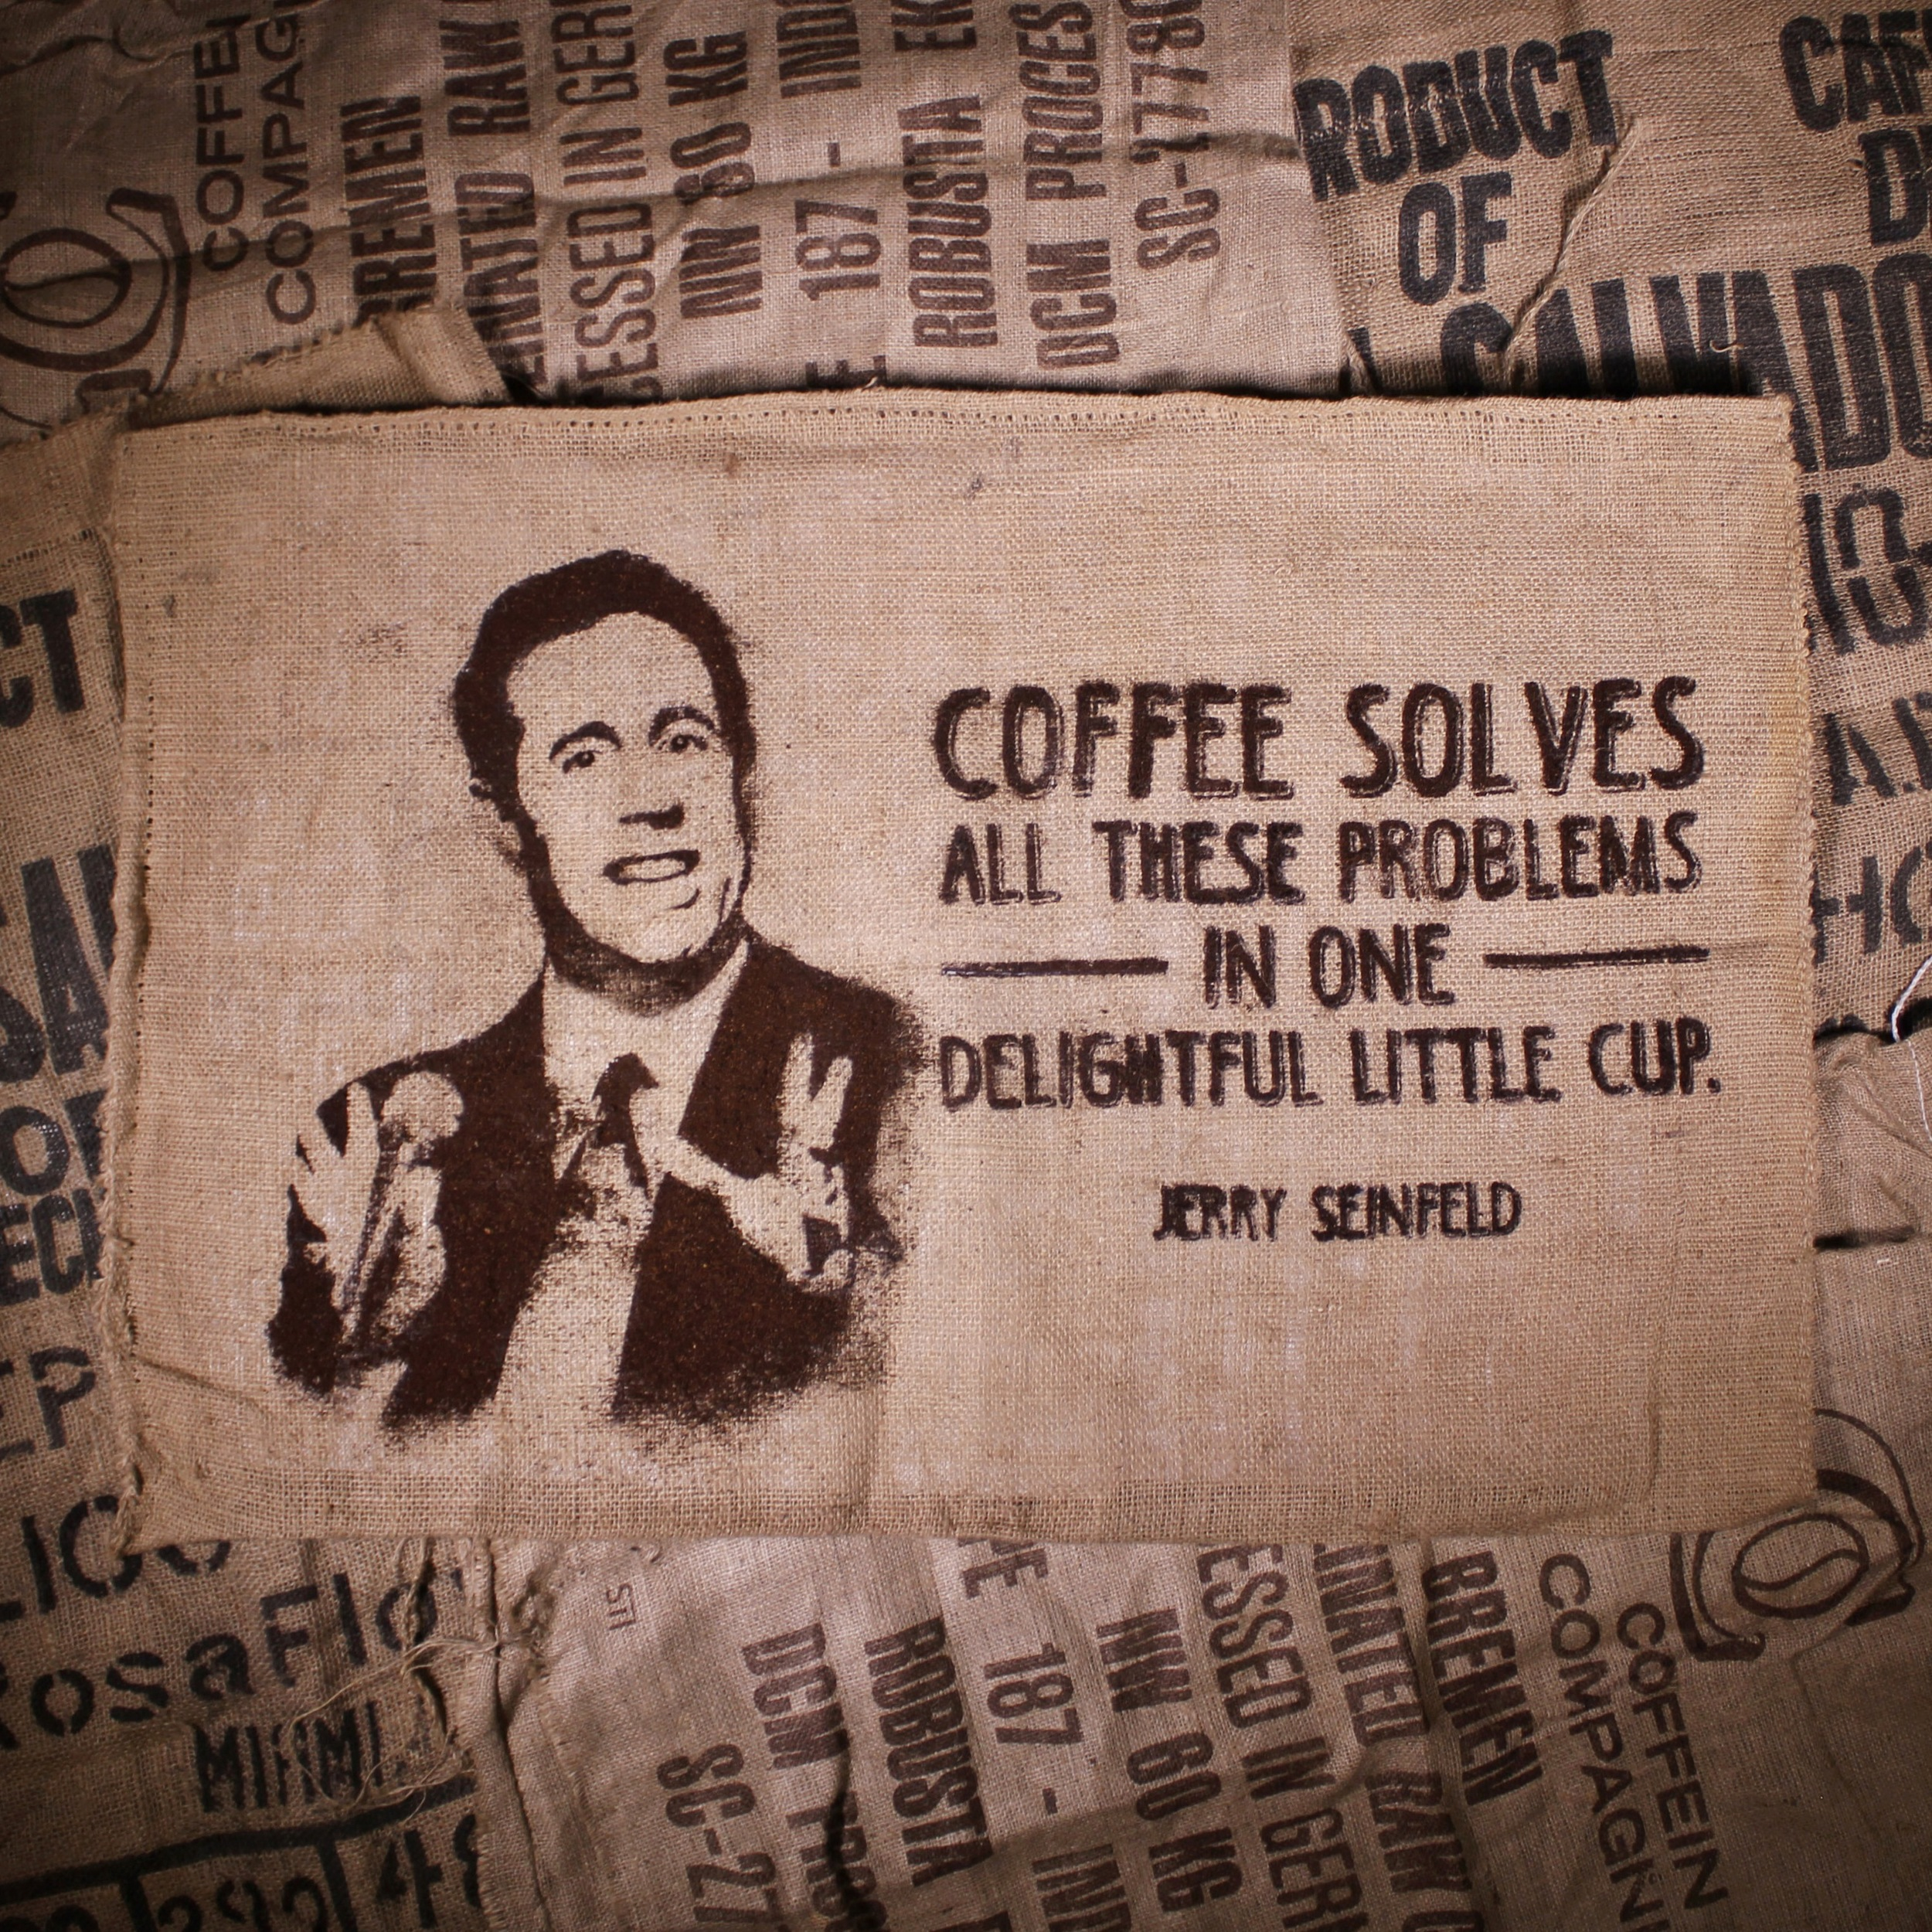 Coffee Solves All These Problems